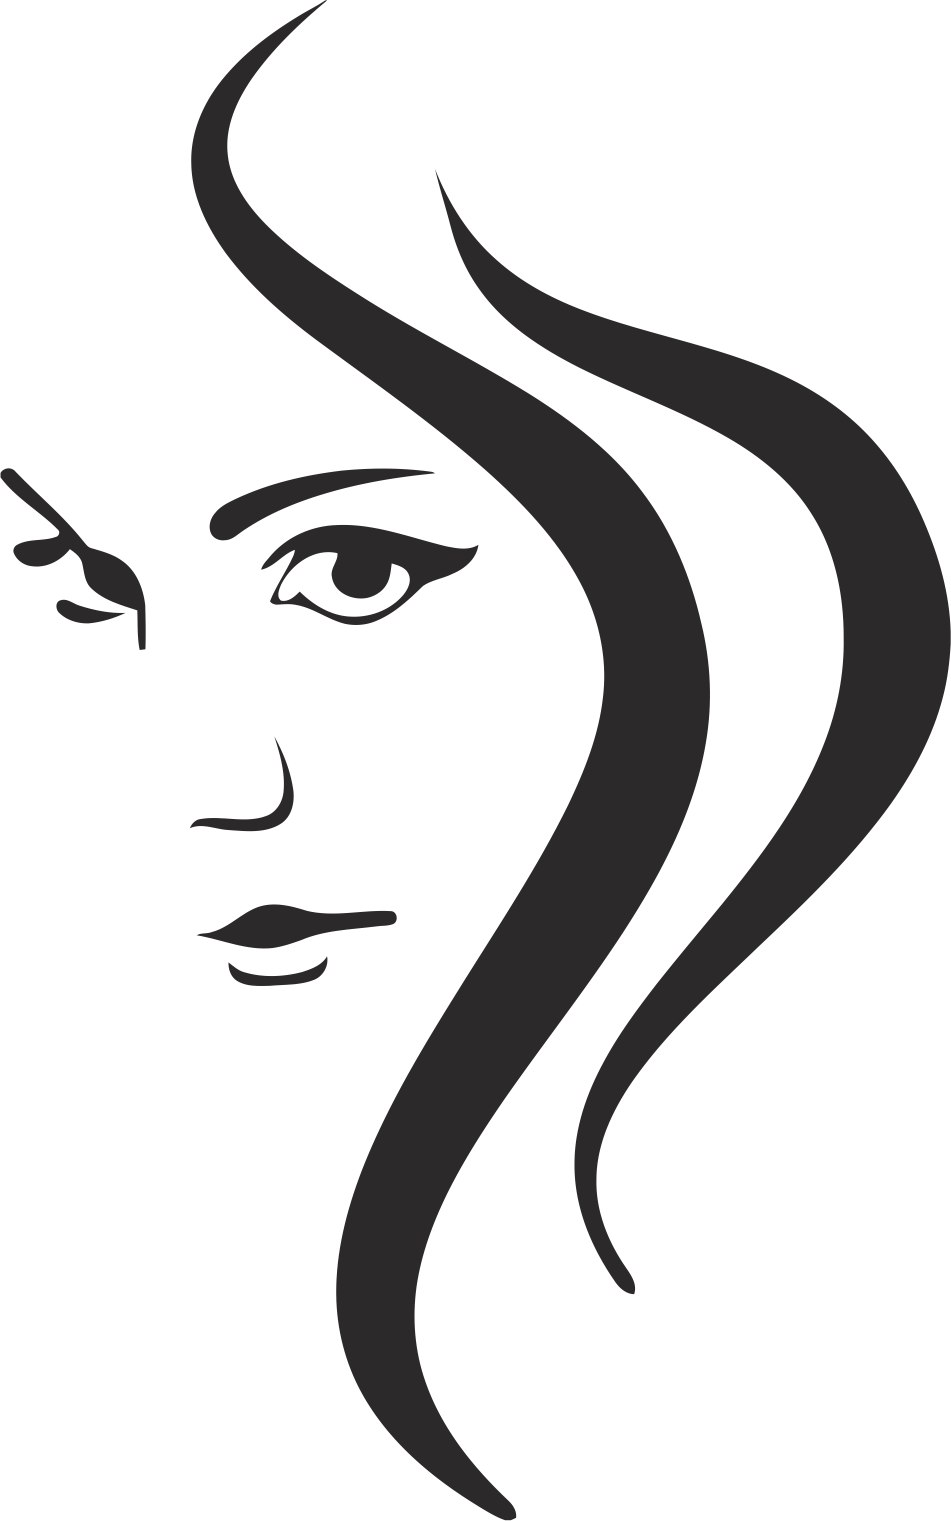 Woman Silhouette Free Vector